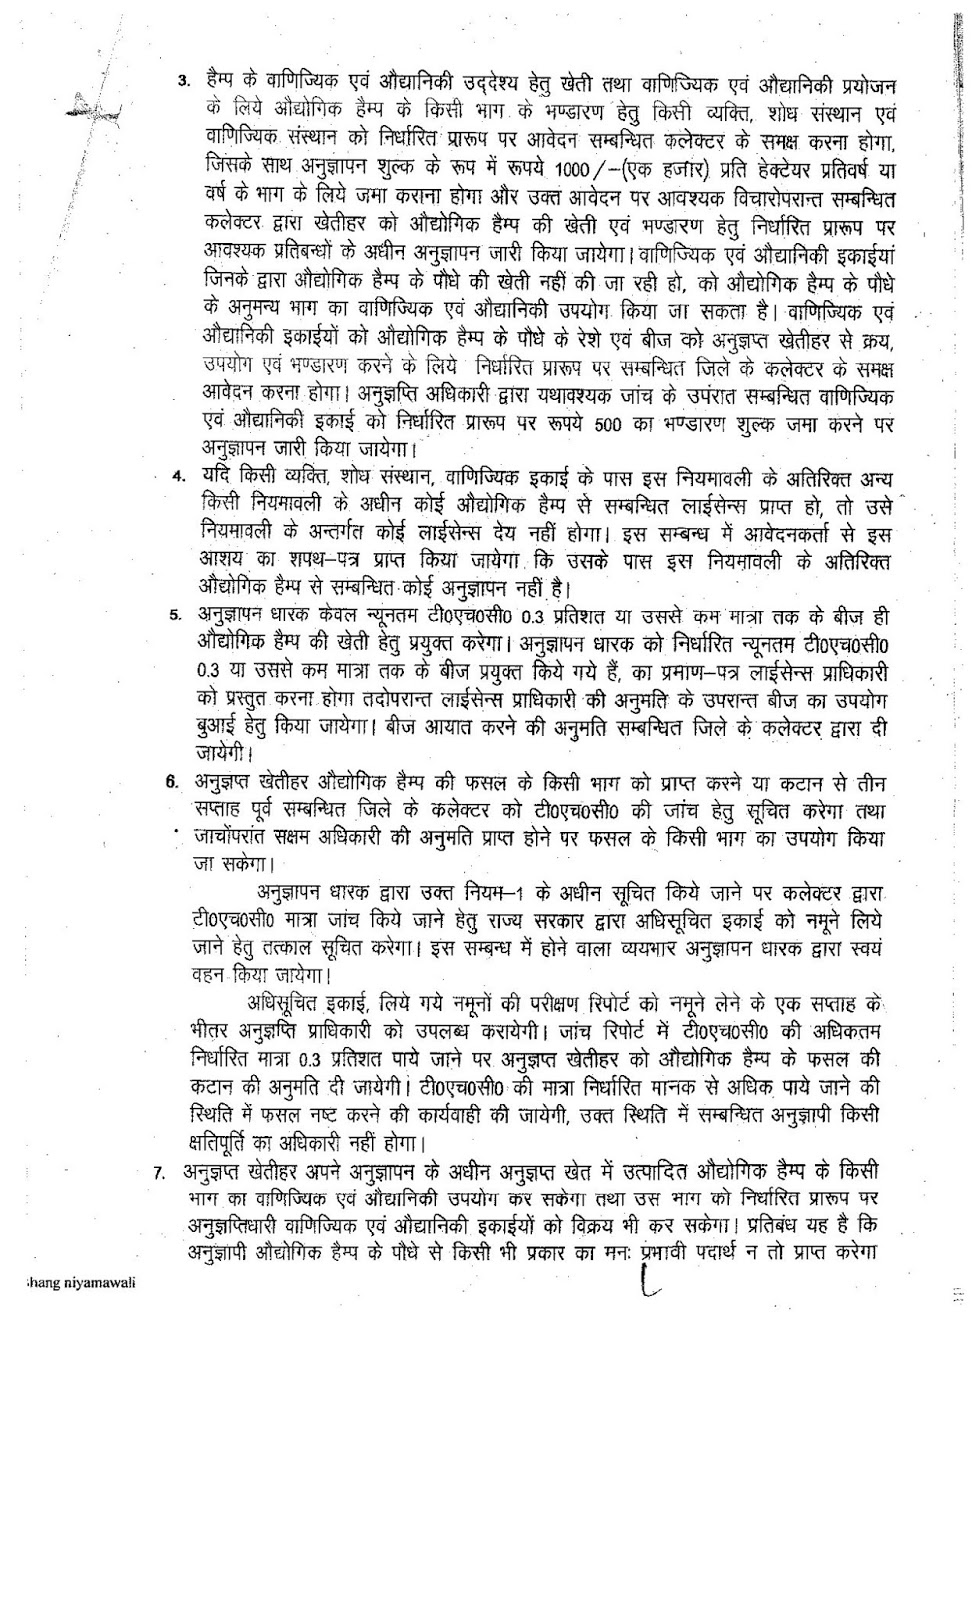 point 3 to 7 hemp cultivation legal requirements in Hindi